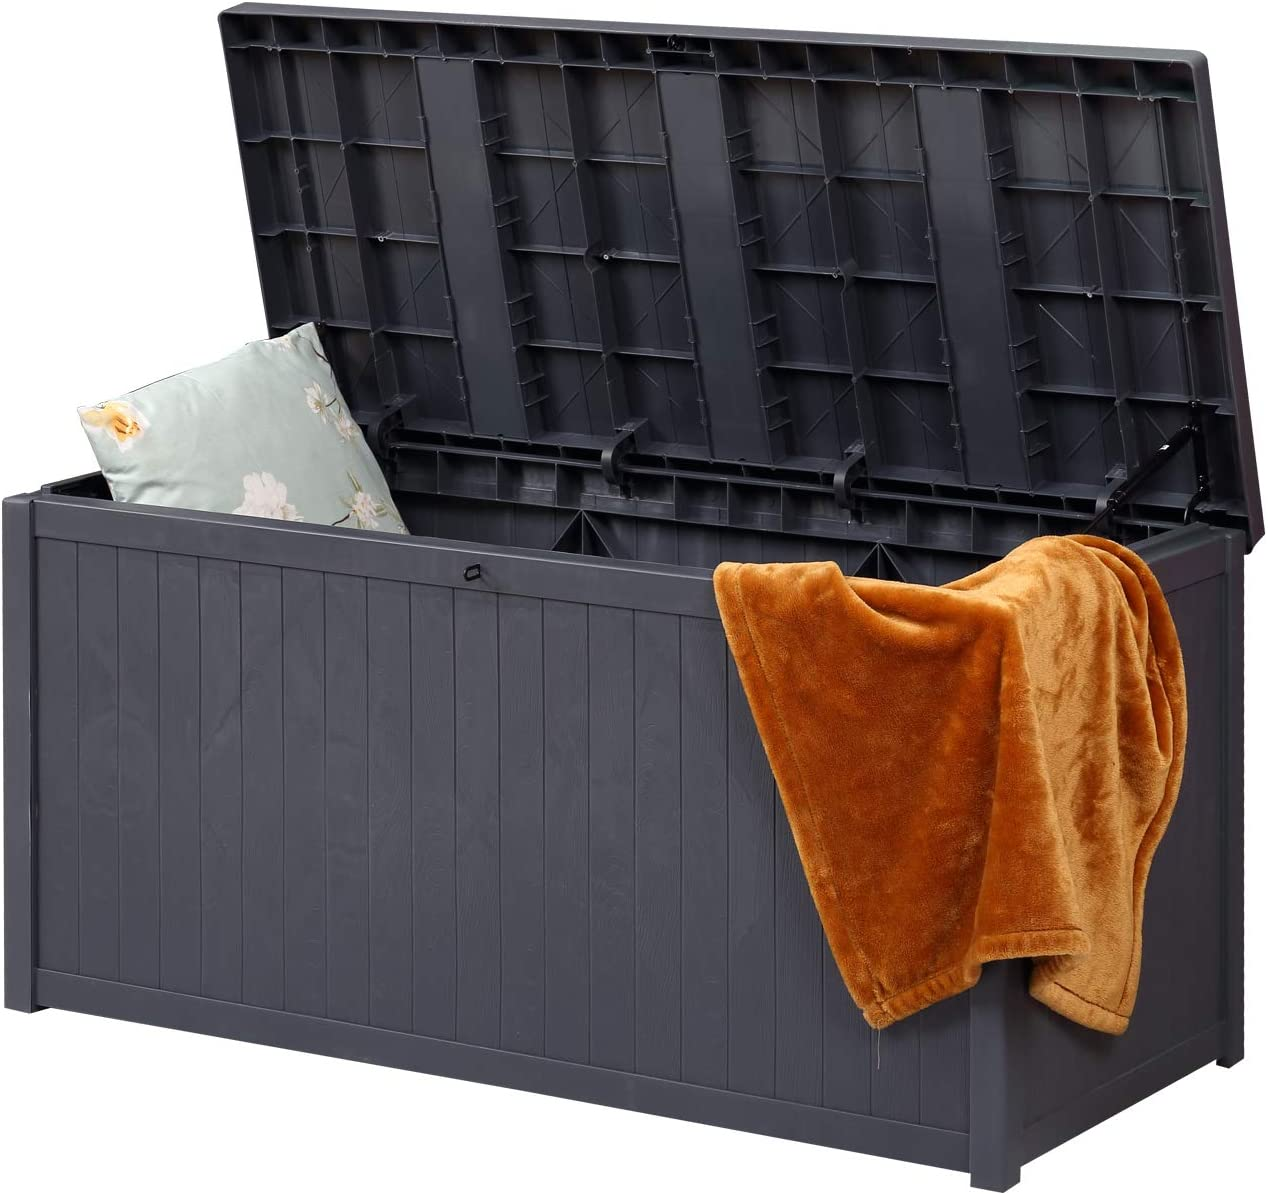 OVASTLKUY Outdoor Storage Container Deck Box-Organization and Storage for Patio Furniture, Outdoor Cushions, Garden Tools and Pool Toys (C006)